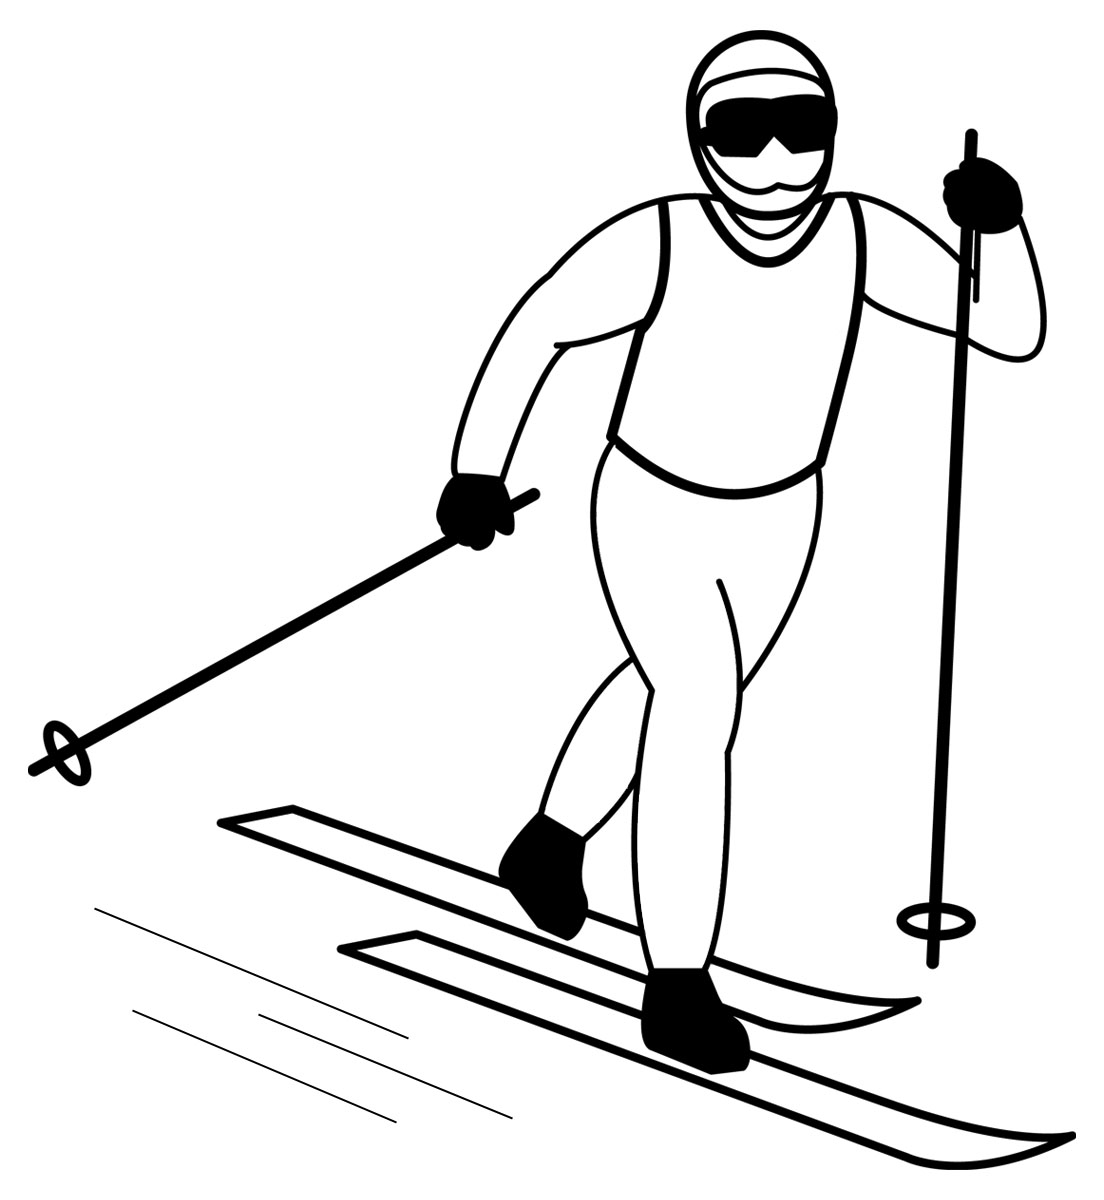 how to draw a person skiing